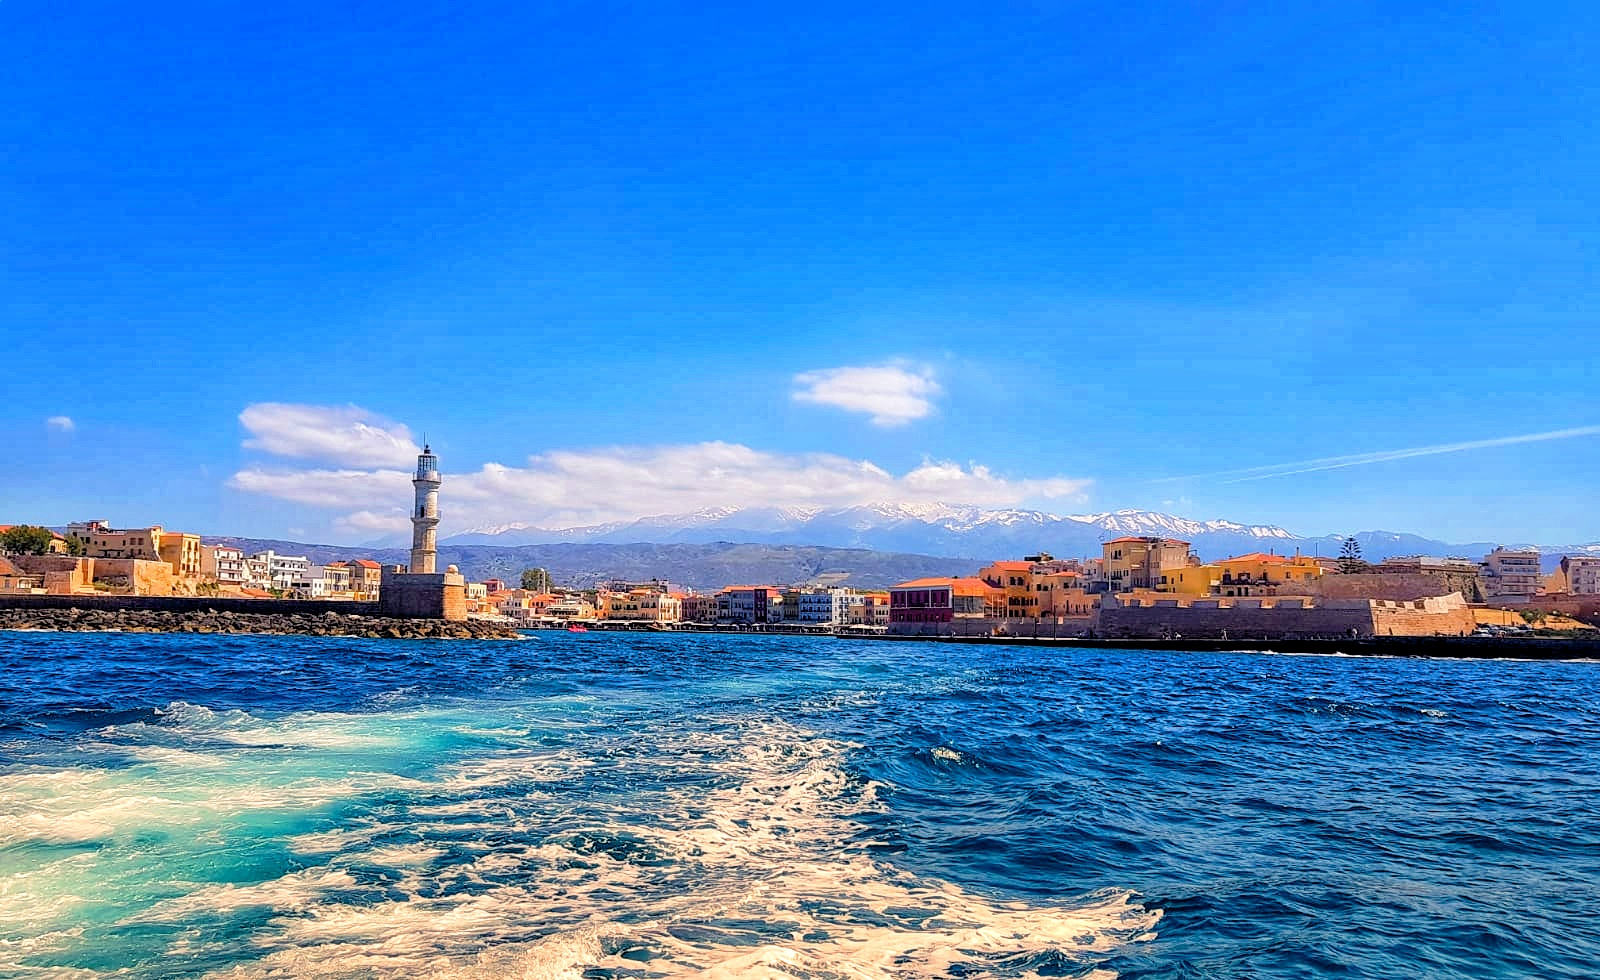 Entrance to Chania - The Venetian Harbour